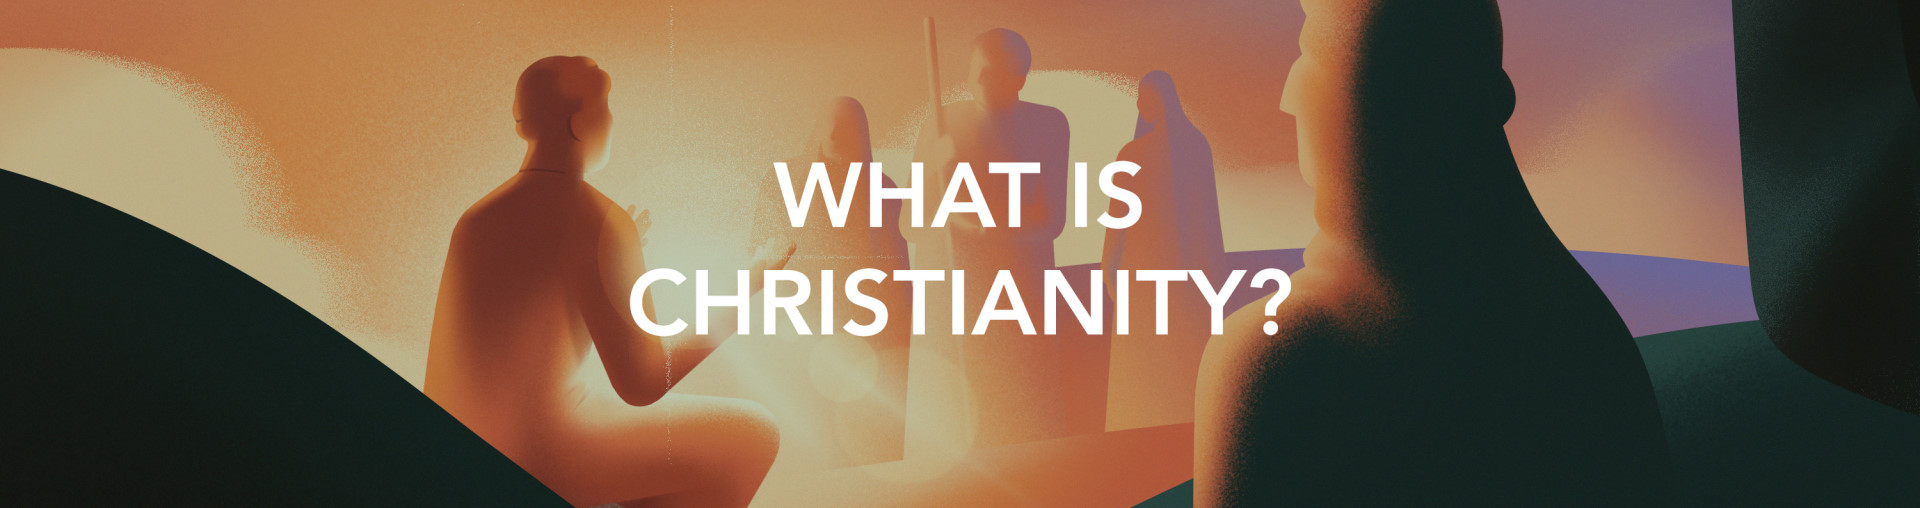 What-is-Christianity-banner HD